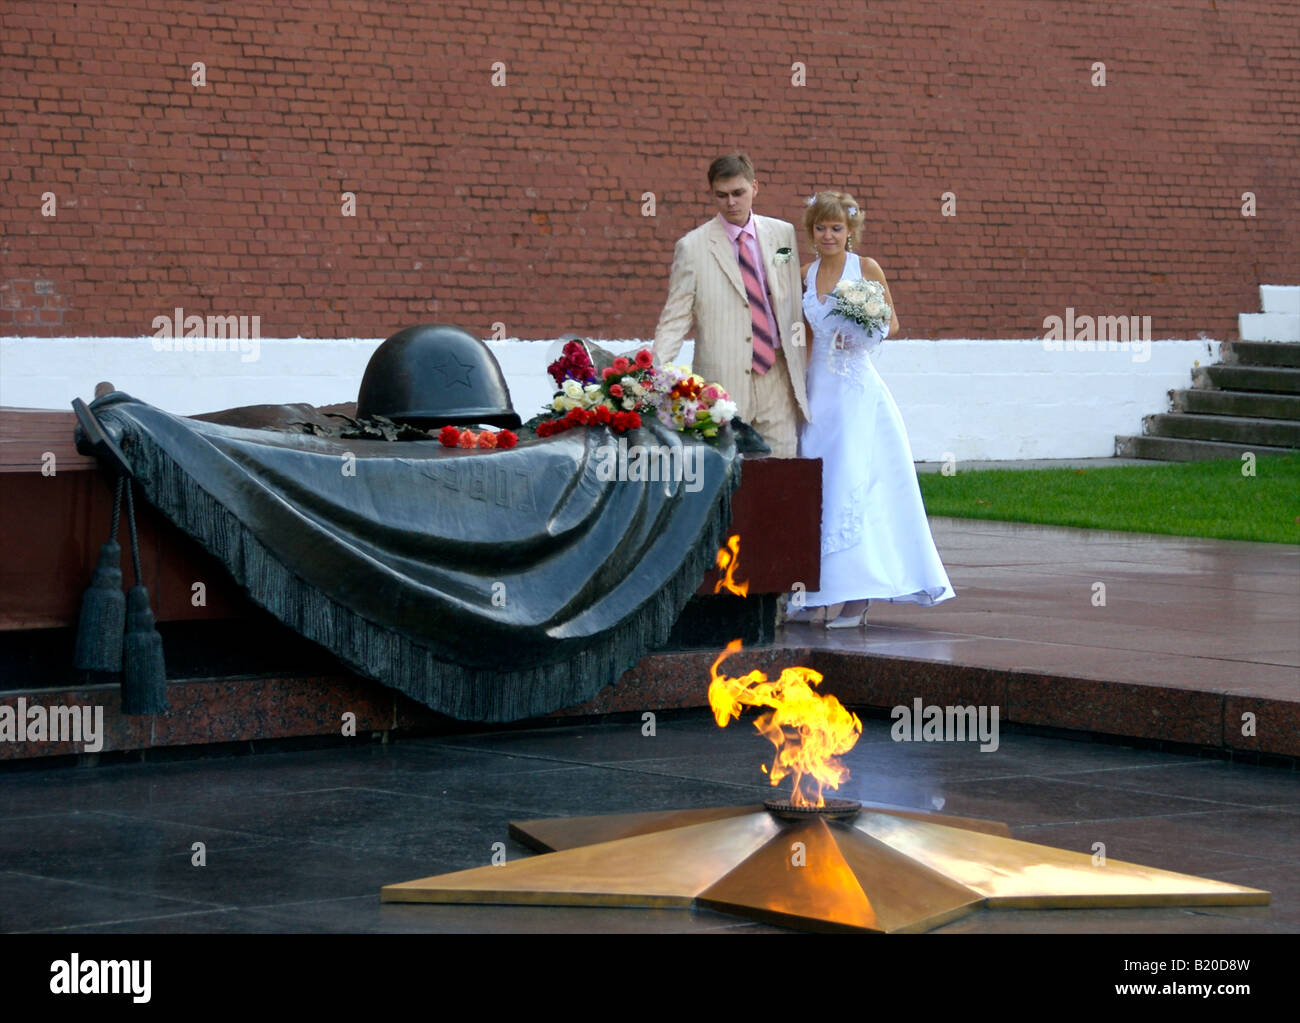 A Newly Wed couple places flowers at the Tomb of the Unknown Soldier in Moscow, Russia Stock Photo